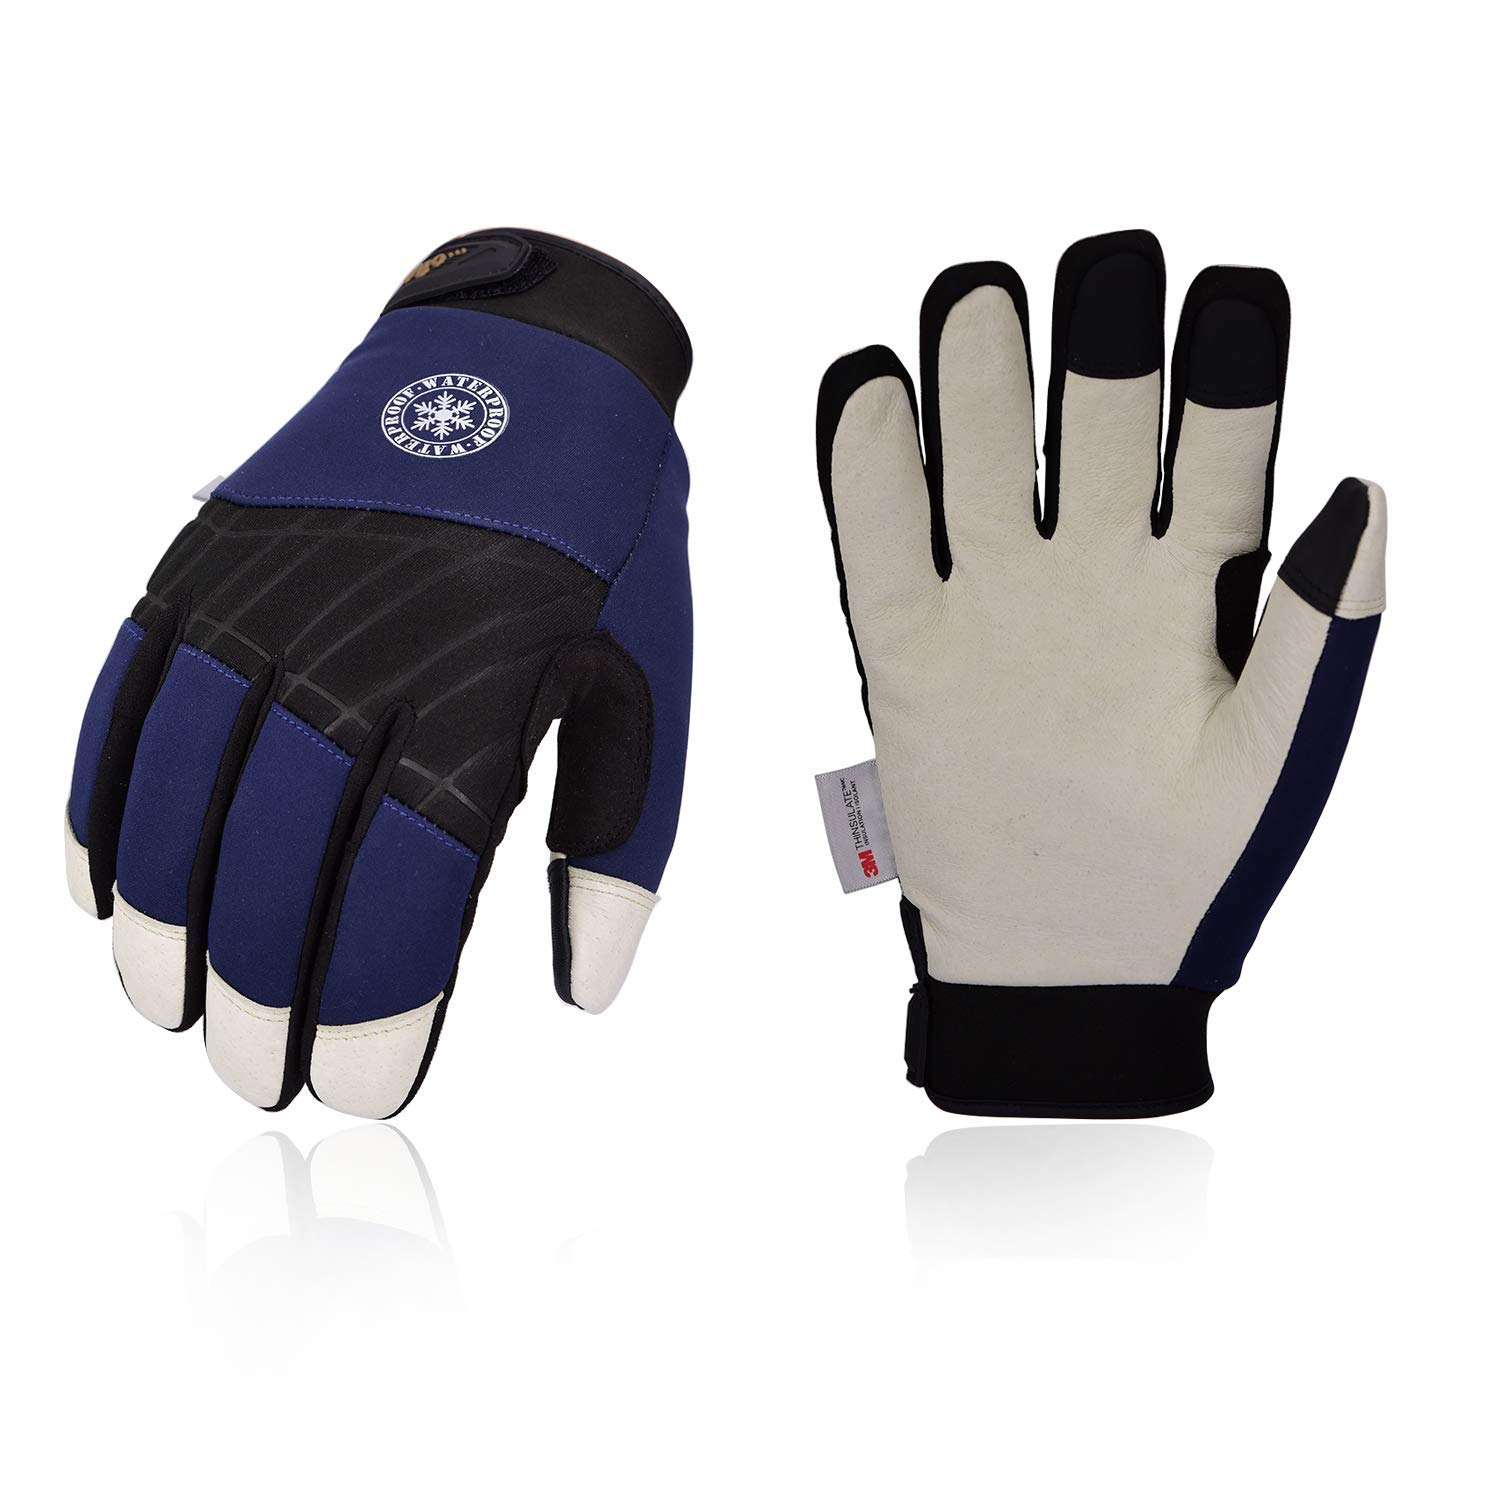 Vgo 0℃//32 ℉or Above 3M Thinsulate C40 Lined Winter Premium Pigskin Leather Waterproof Work Gloves 1Pair,Size L,Dark Blue,PA1016FW